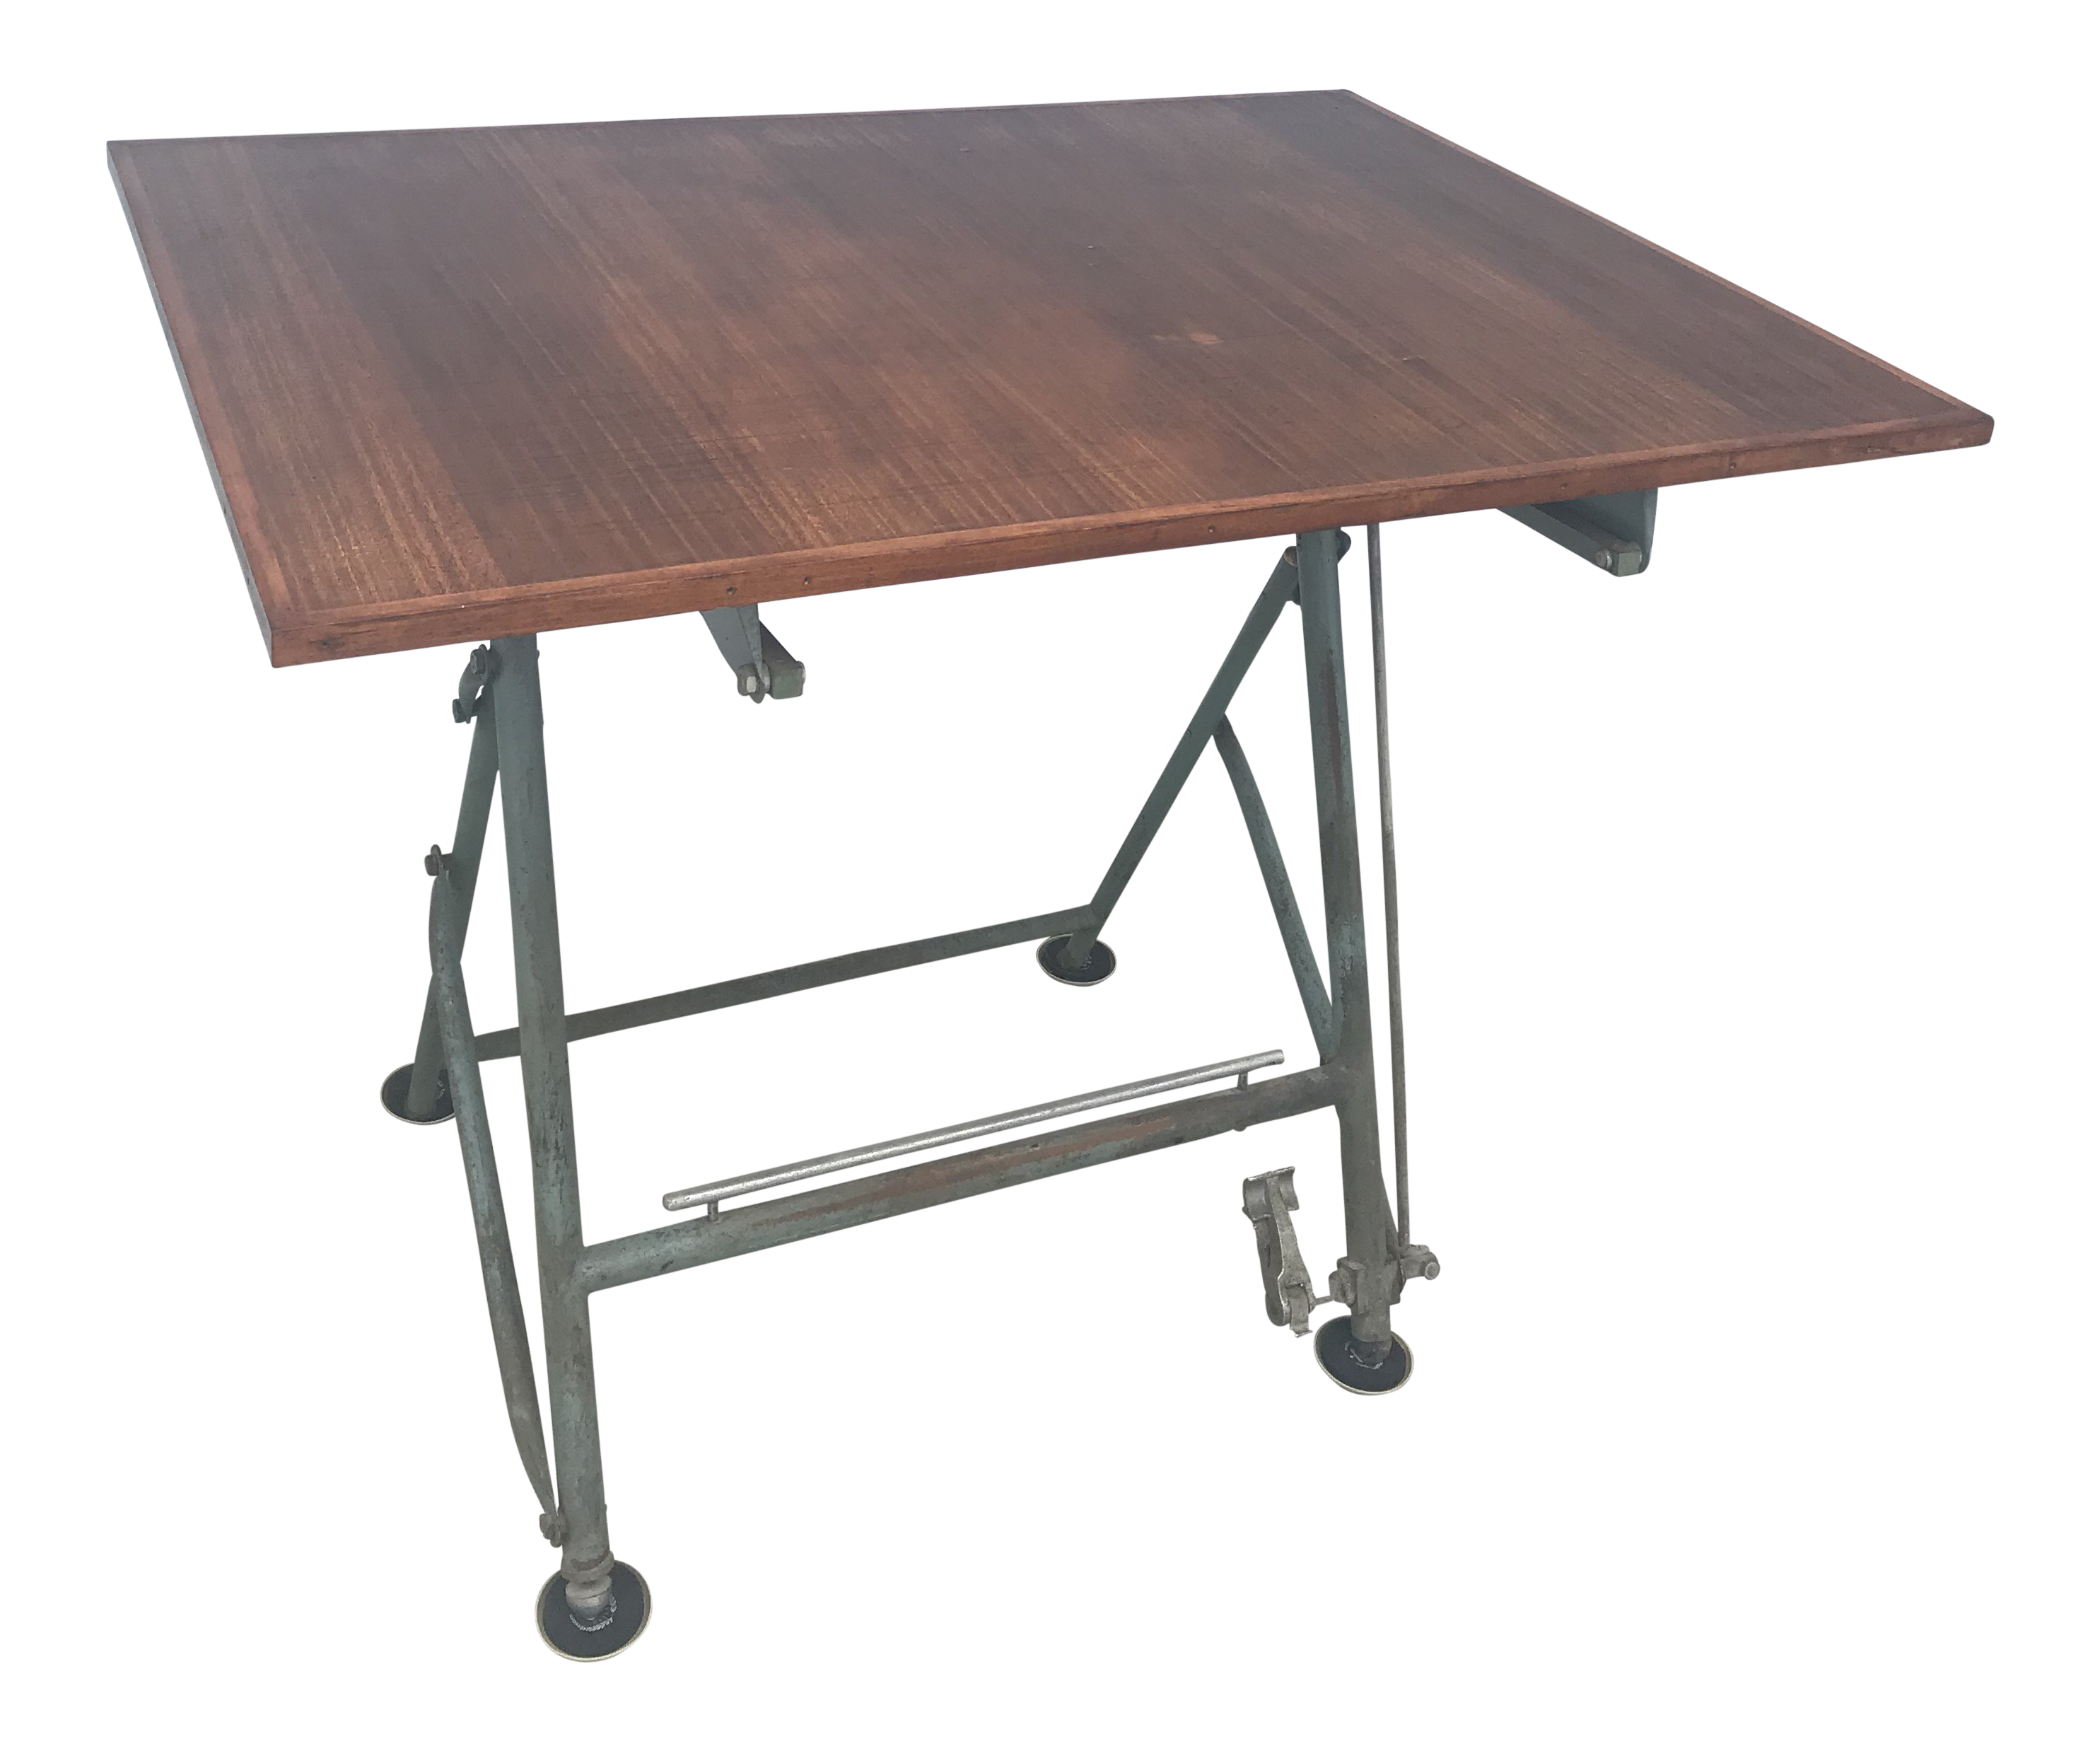 1950 French Unic Studio Iron Counterbalance Drafting Table For Sale